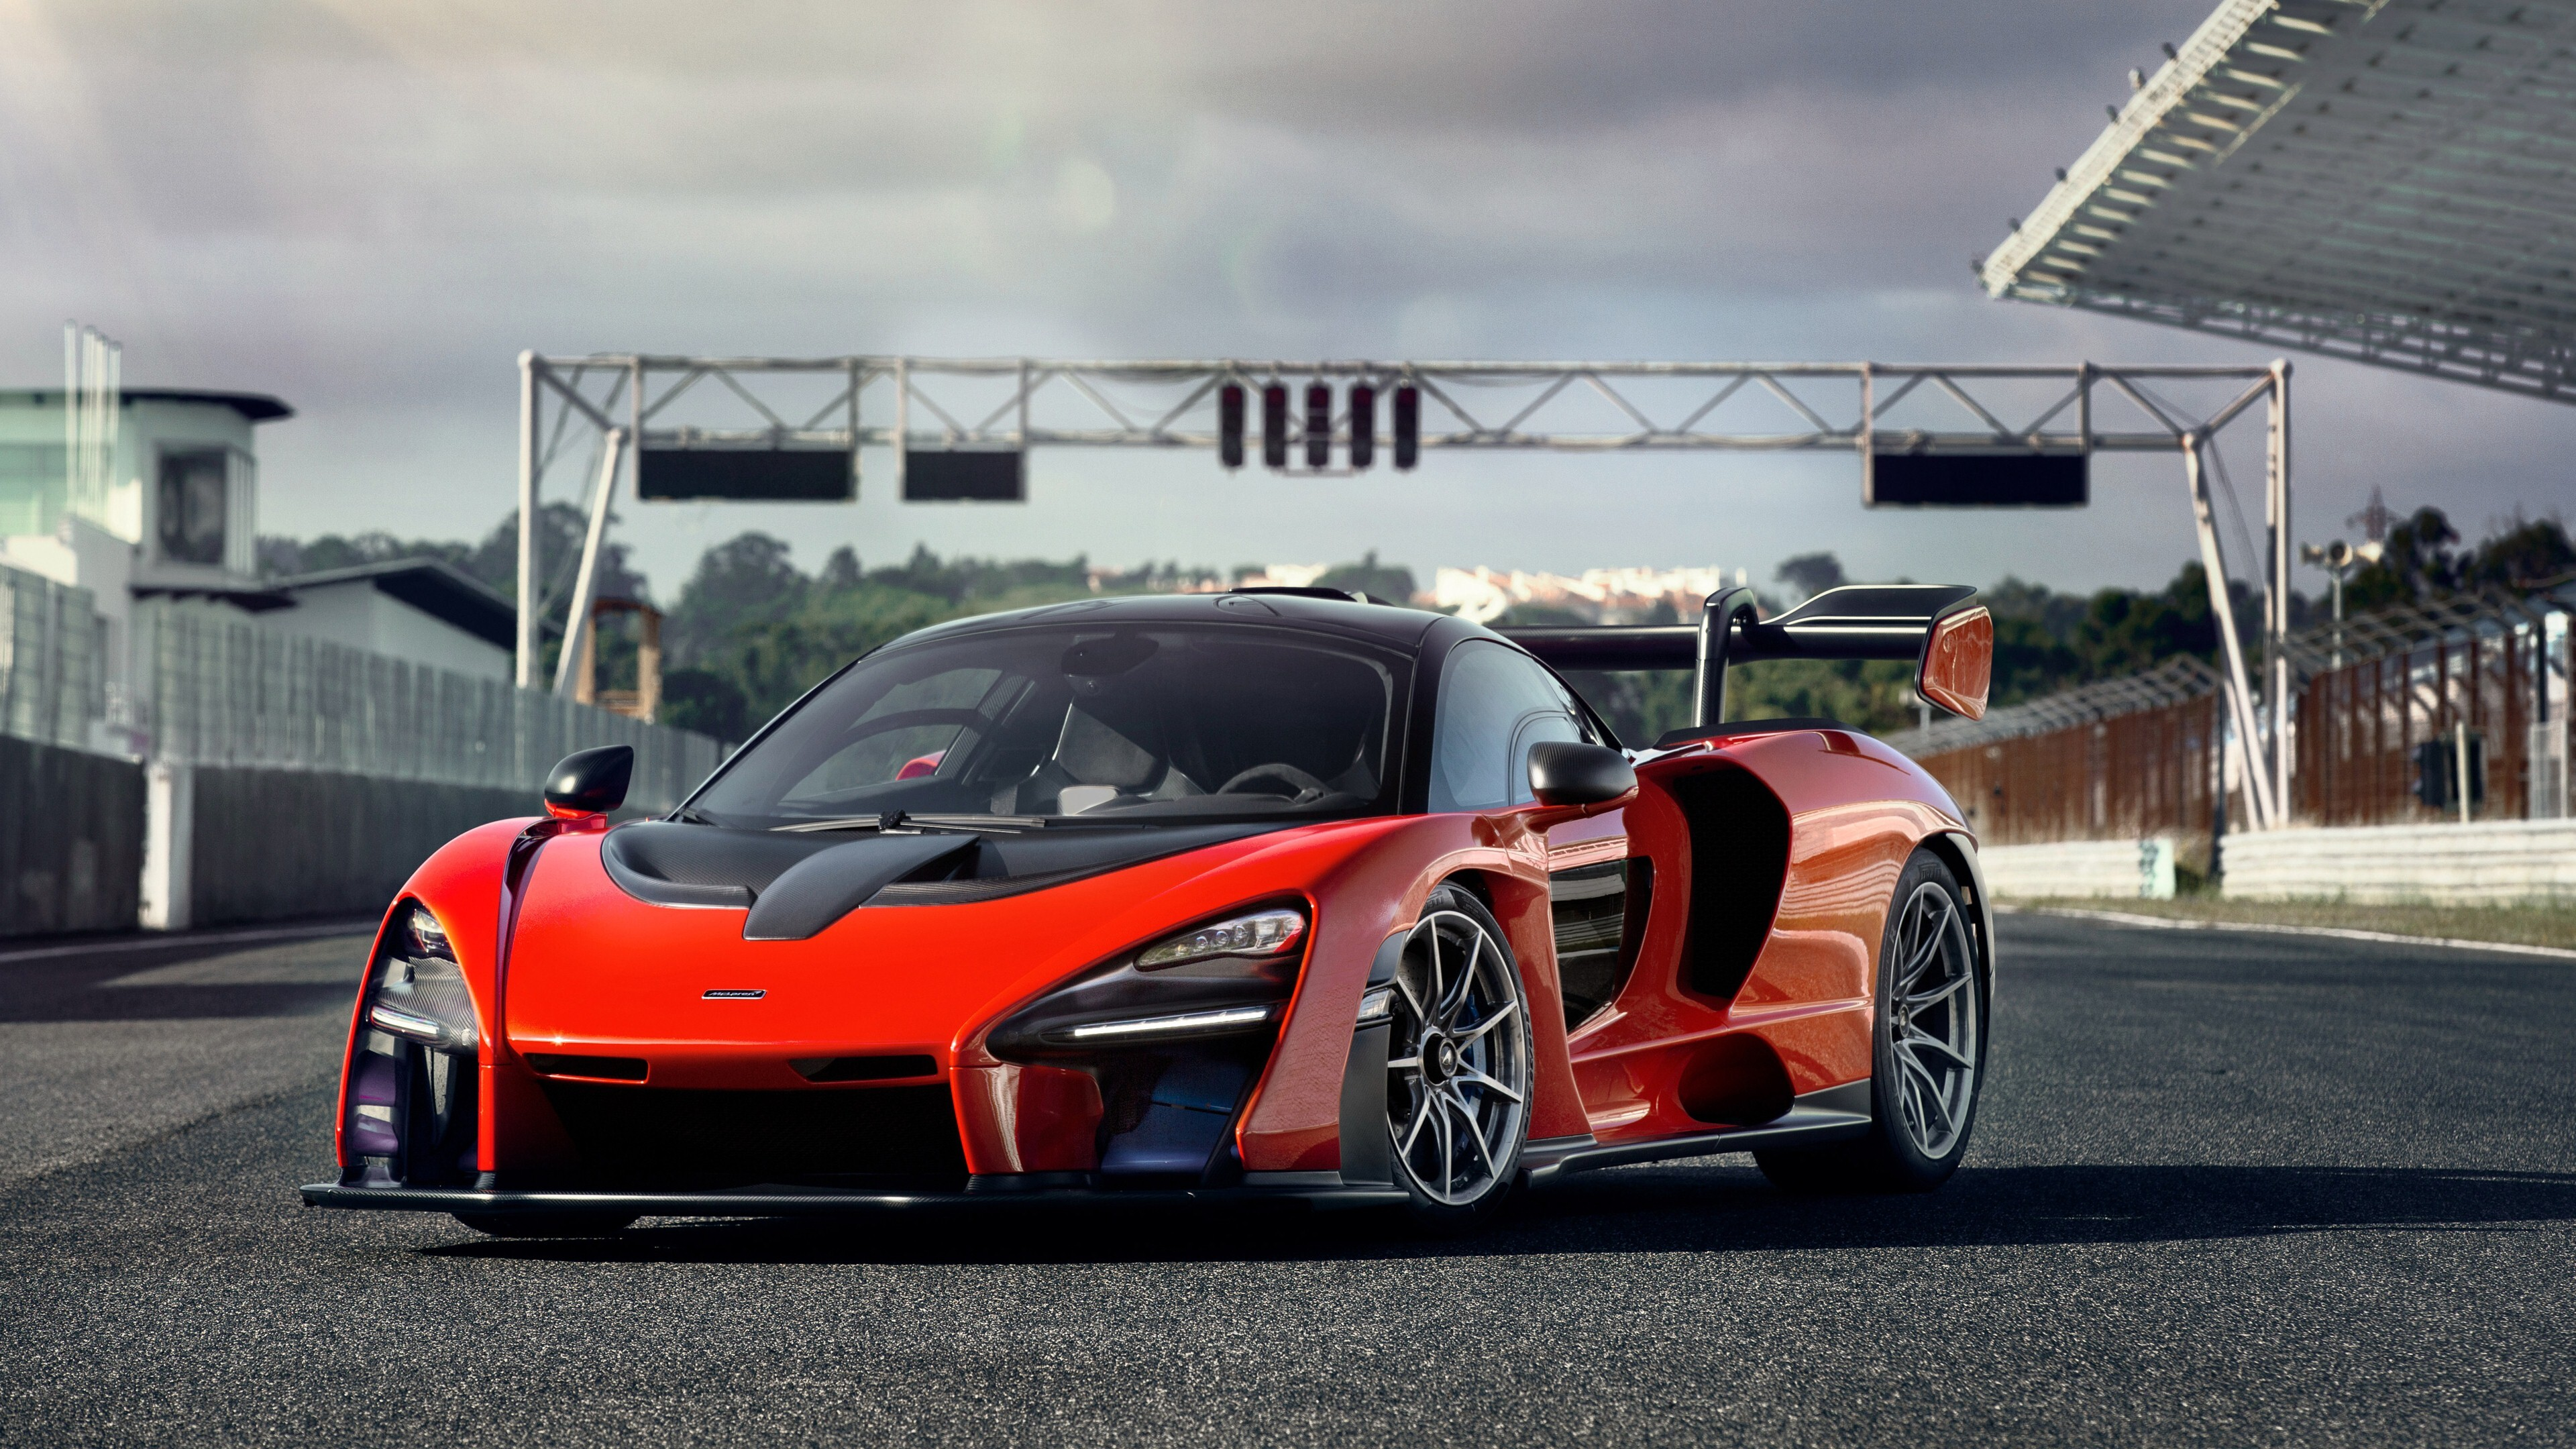 4k wallpaper of 2019 mclaren senna car hd wallpapers - Wallpaper hd 4k car ...